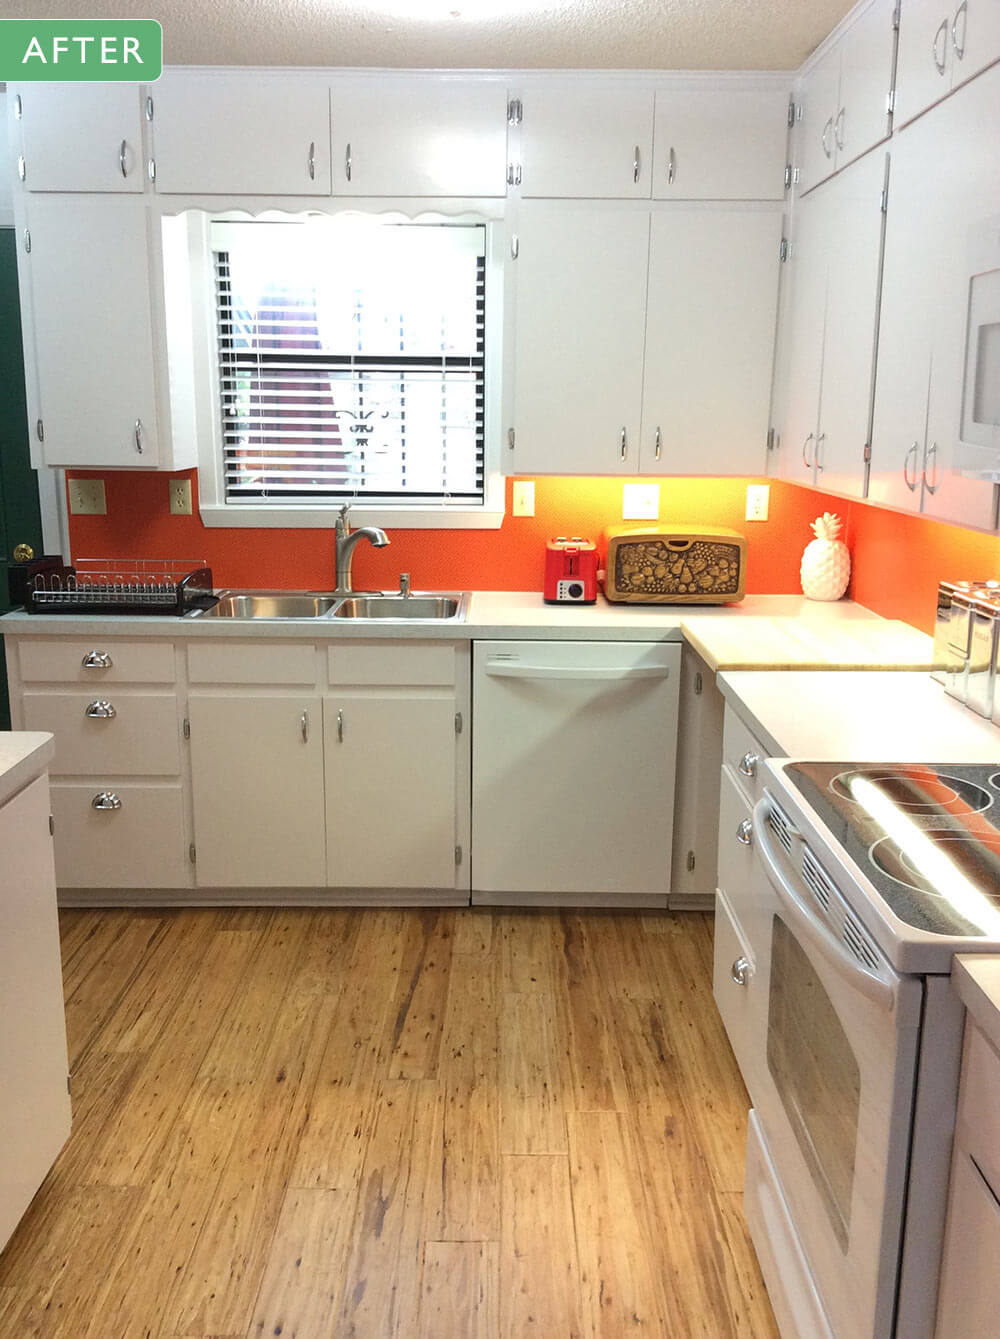 Mary And John Remodel Their 1980s Kitchen With A Fresh